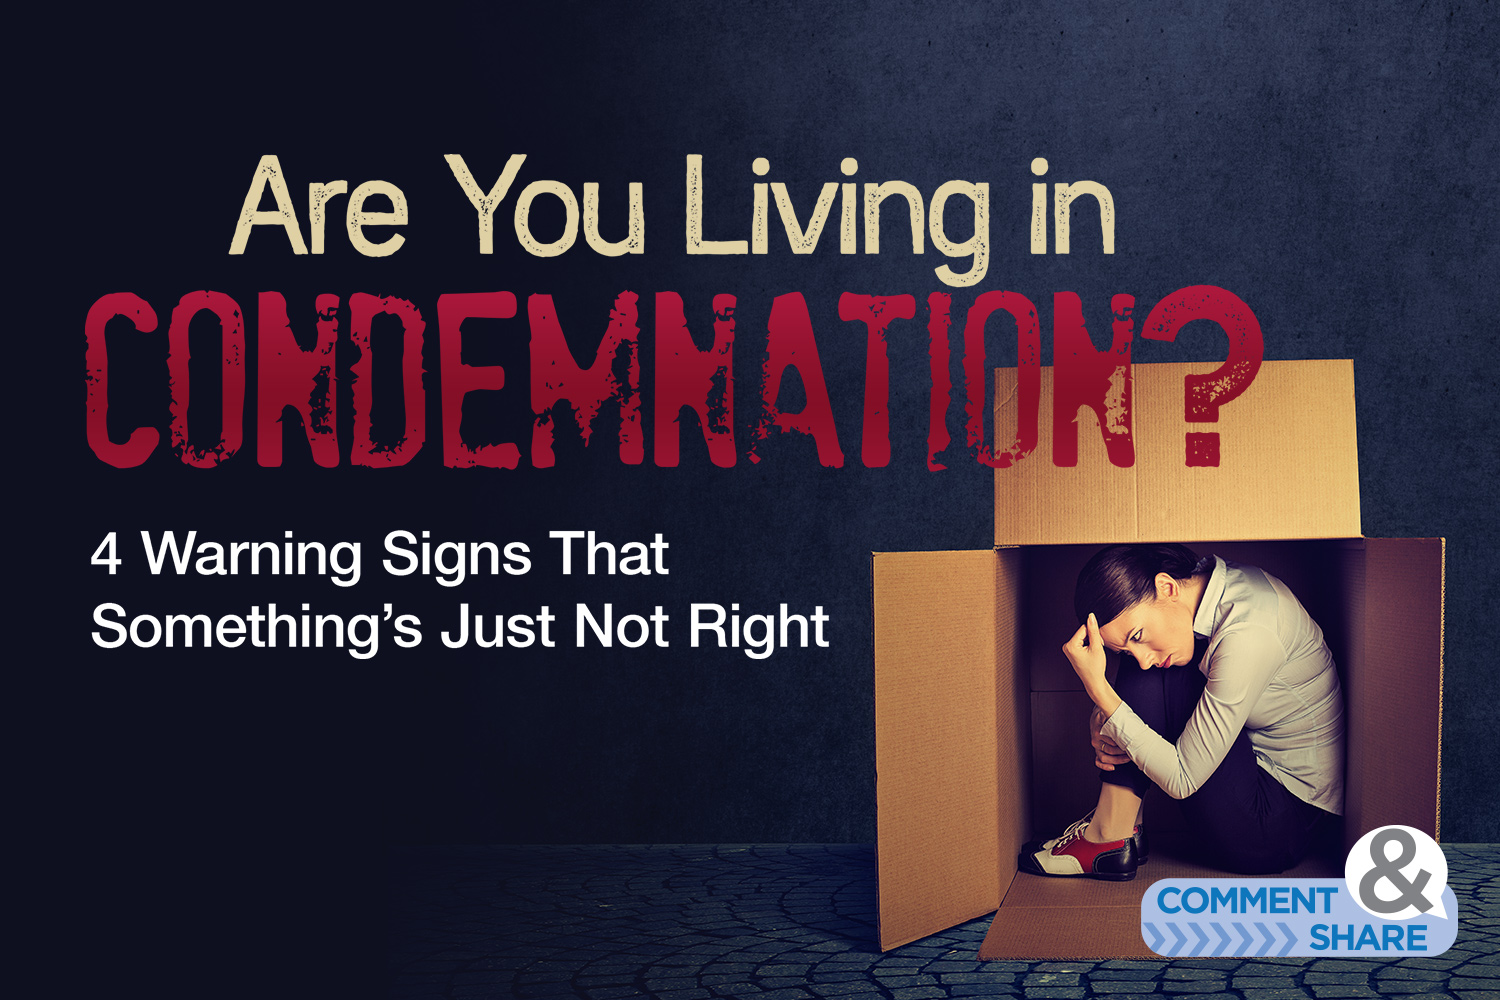 Are You Living in Condemnation?